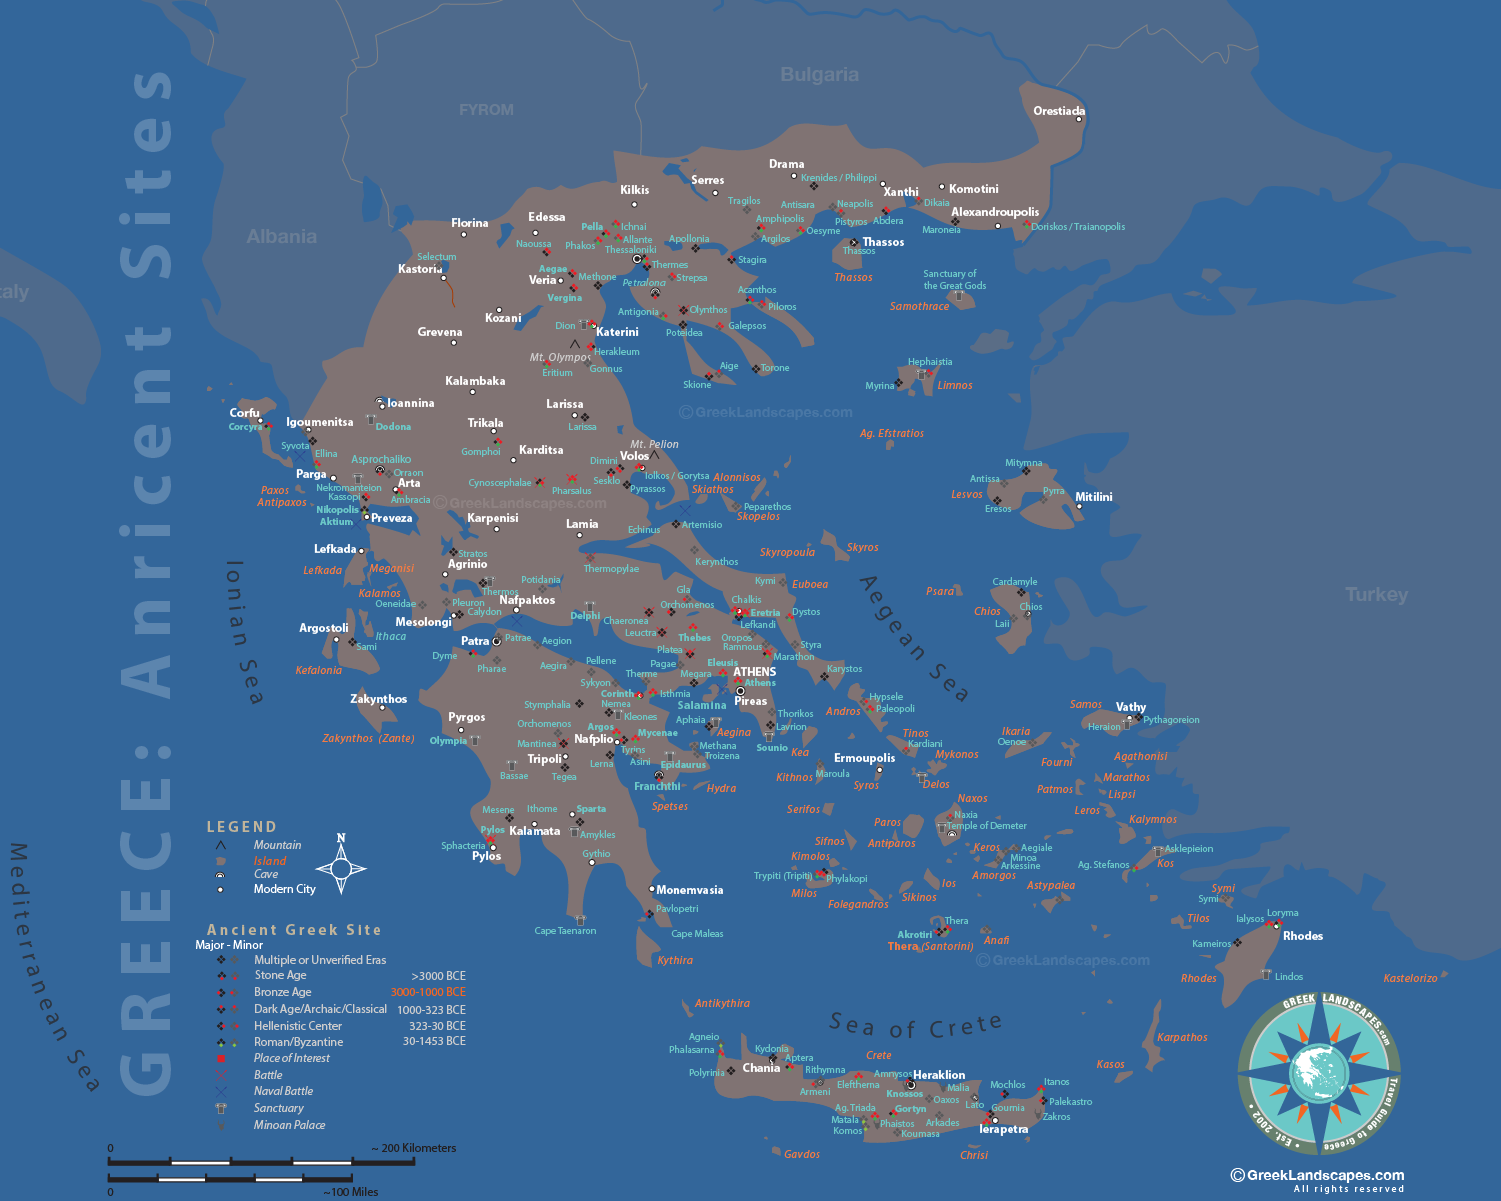 MAP OF GREECE – for Travel Planning and Navigating • Greek Landscapes